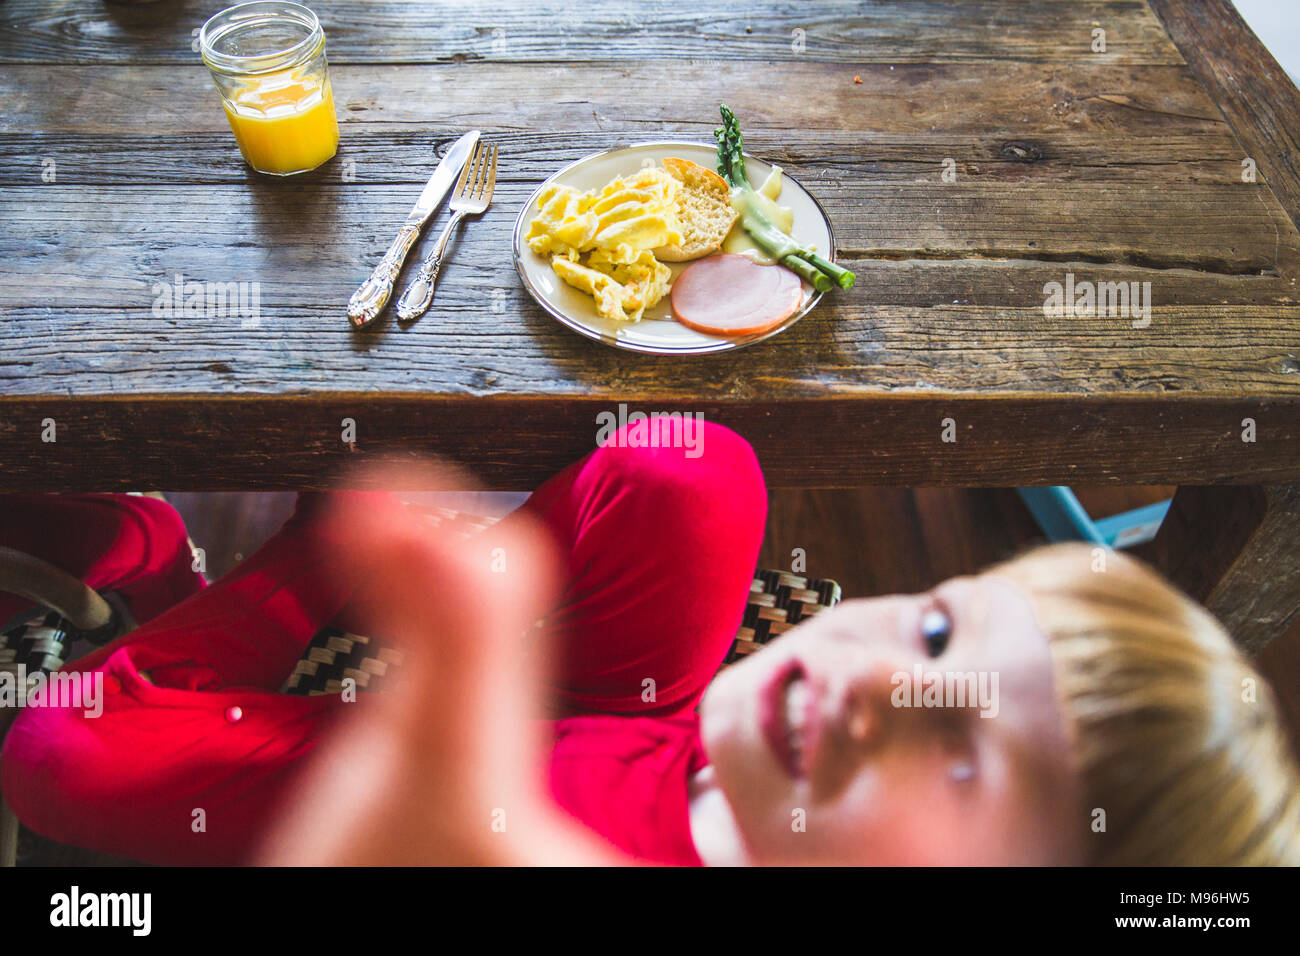 Boy looking up at camera with food ready on the table - Stock Image